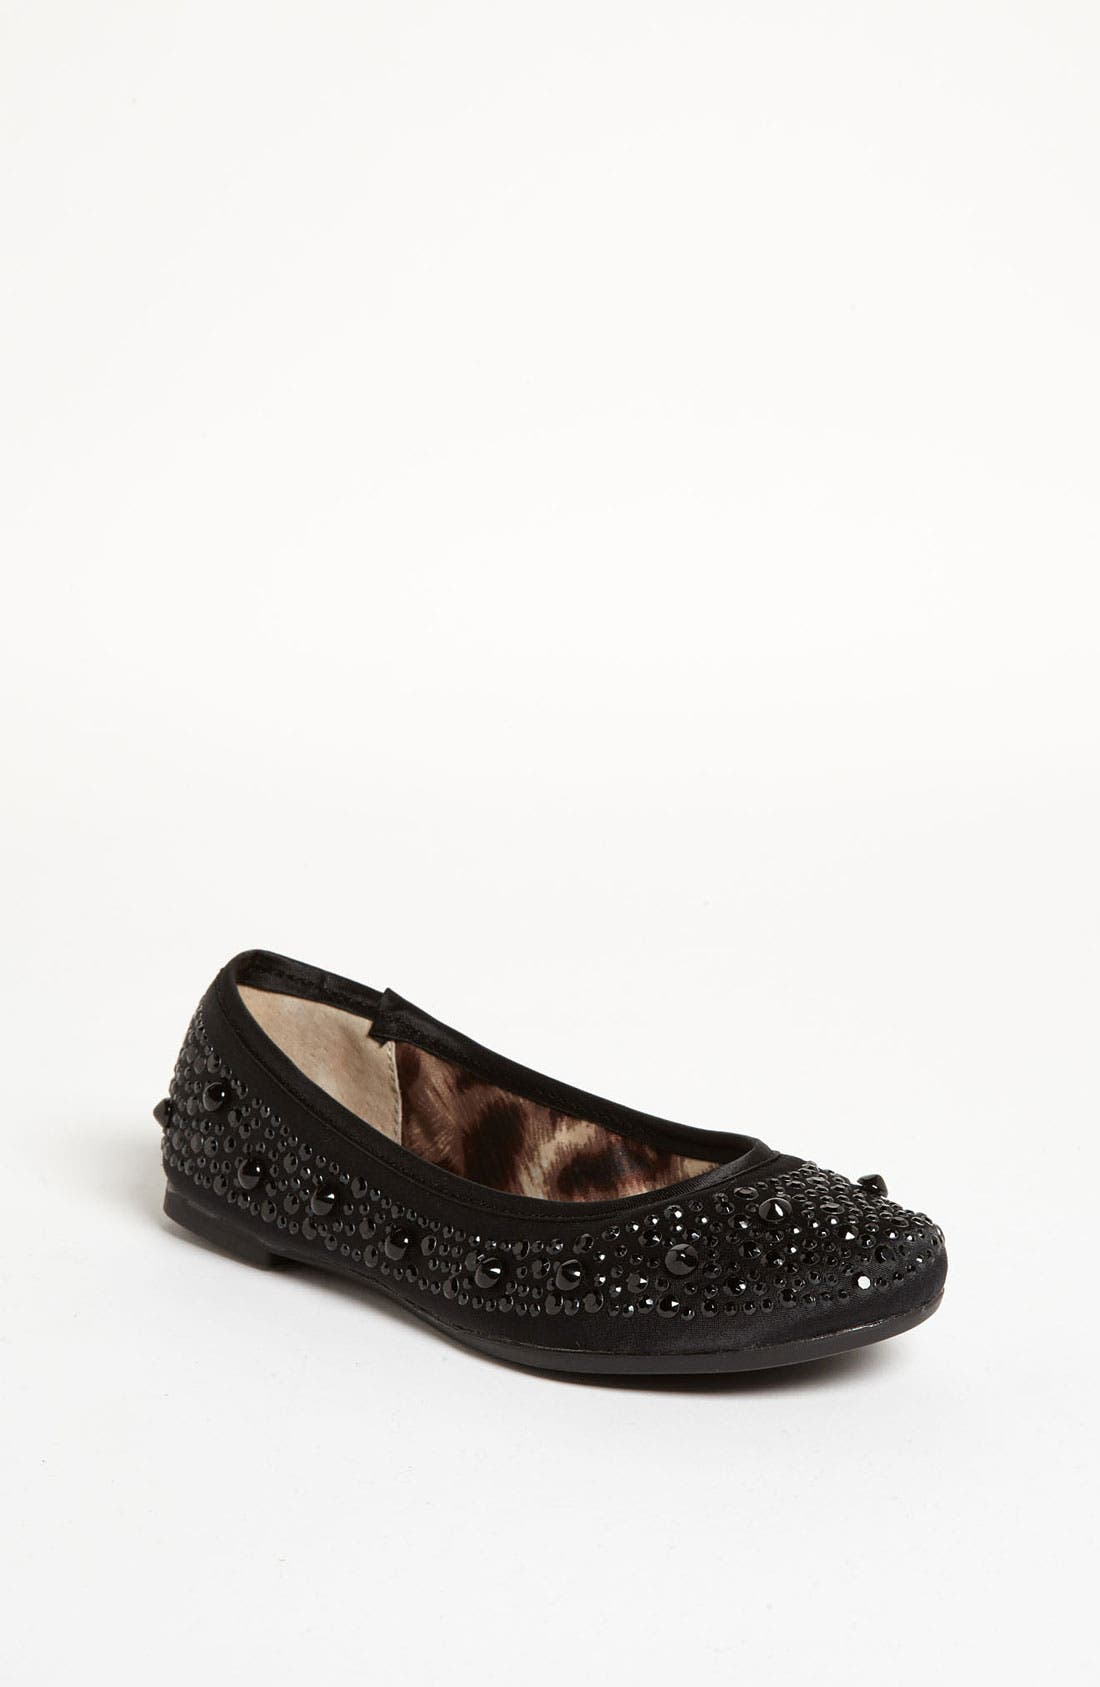 Alternate Image 1 Selected - Sam Edelman 'Abby' Flat (Toddler, Little Kid & Big Kid)